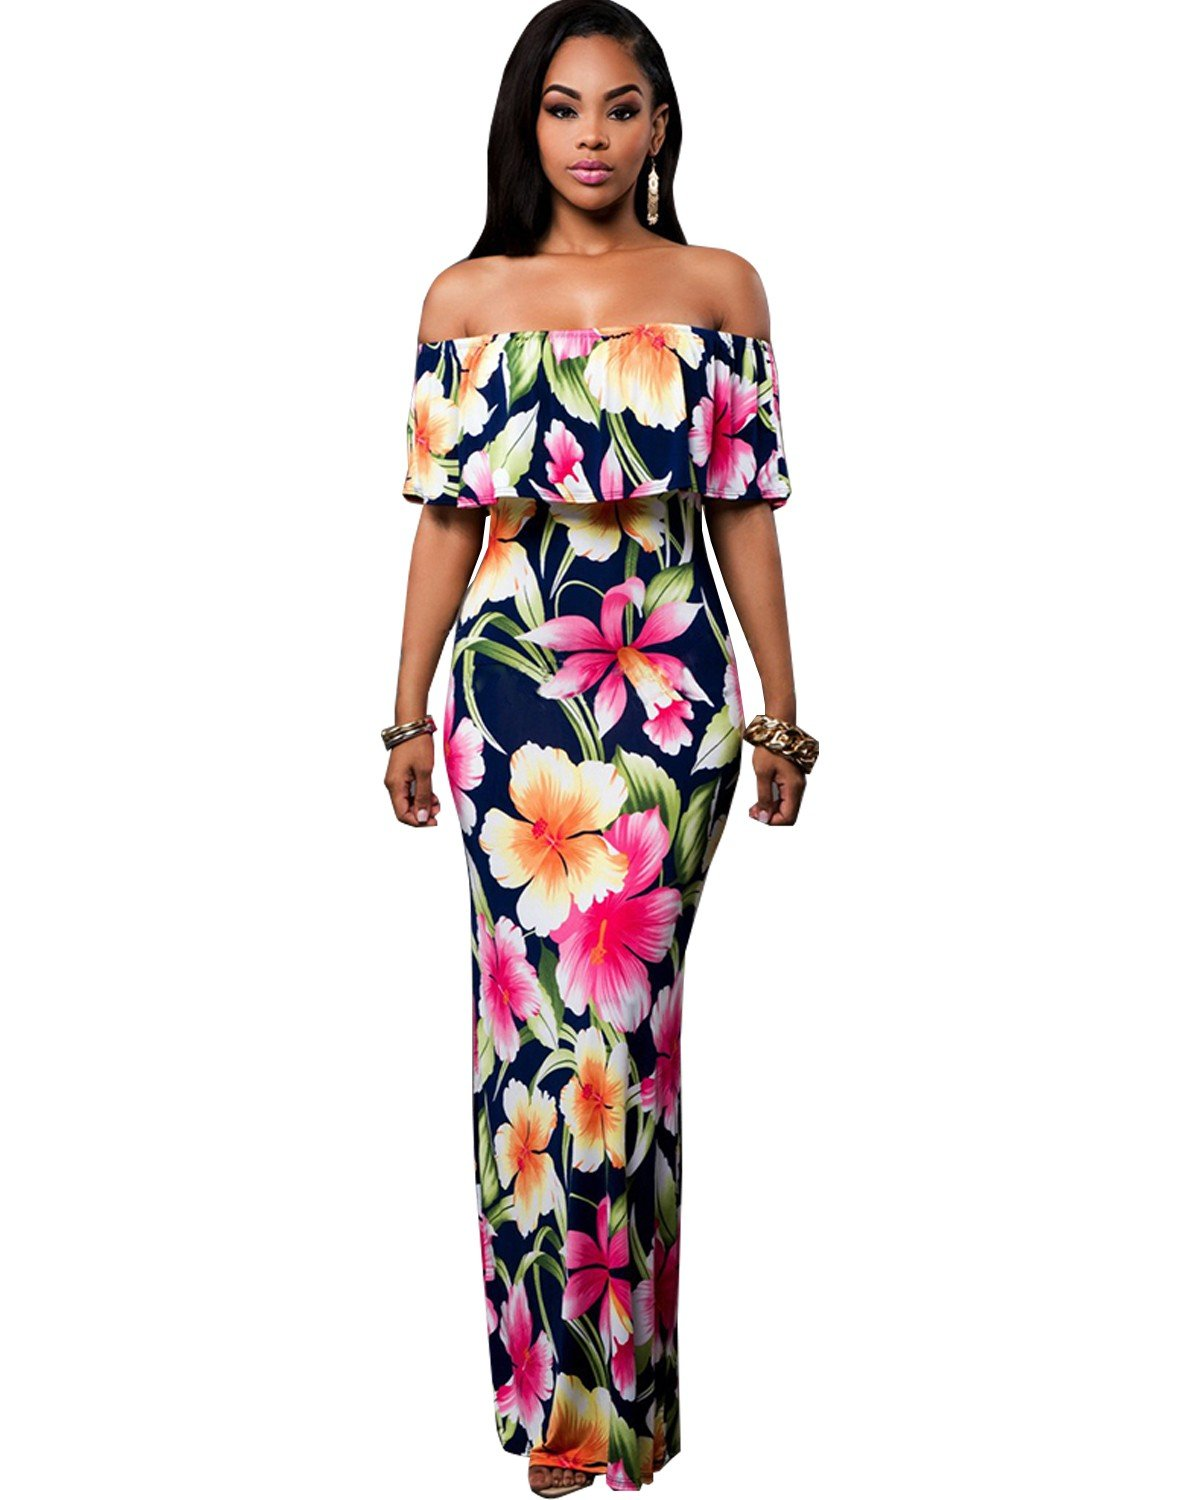 Maxi Dresses For Wedding Guest: Amazon.co.uk